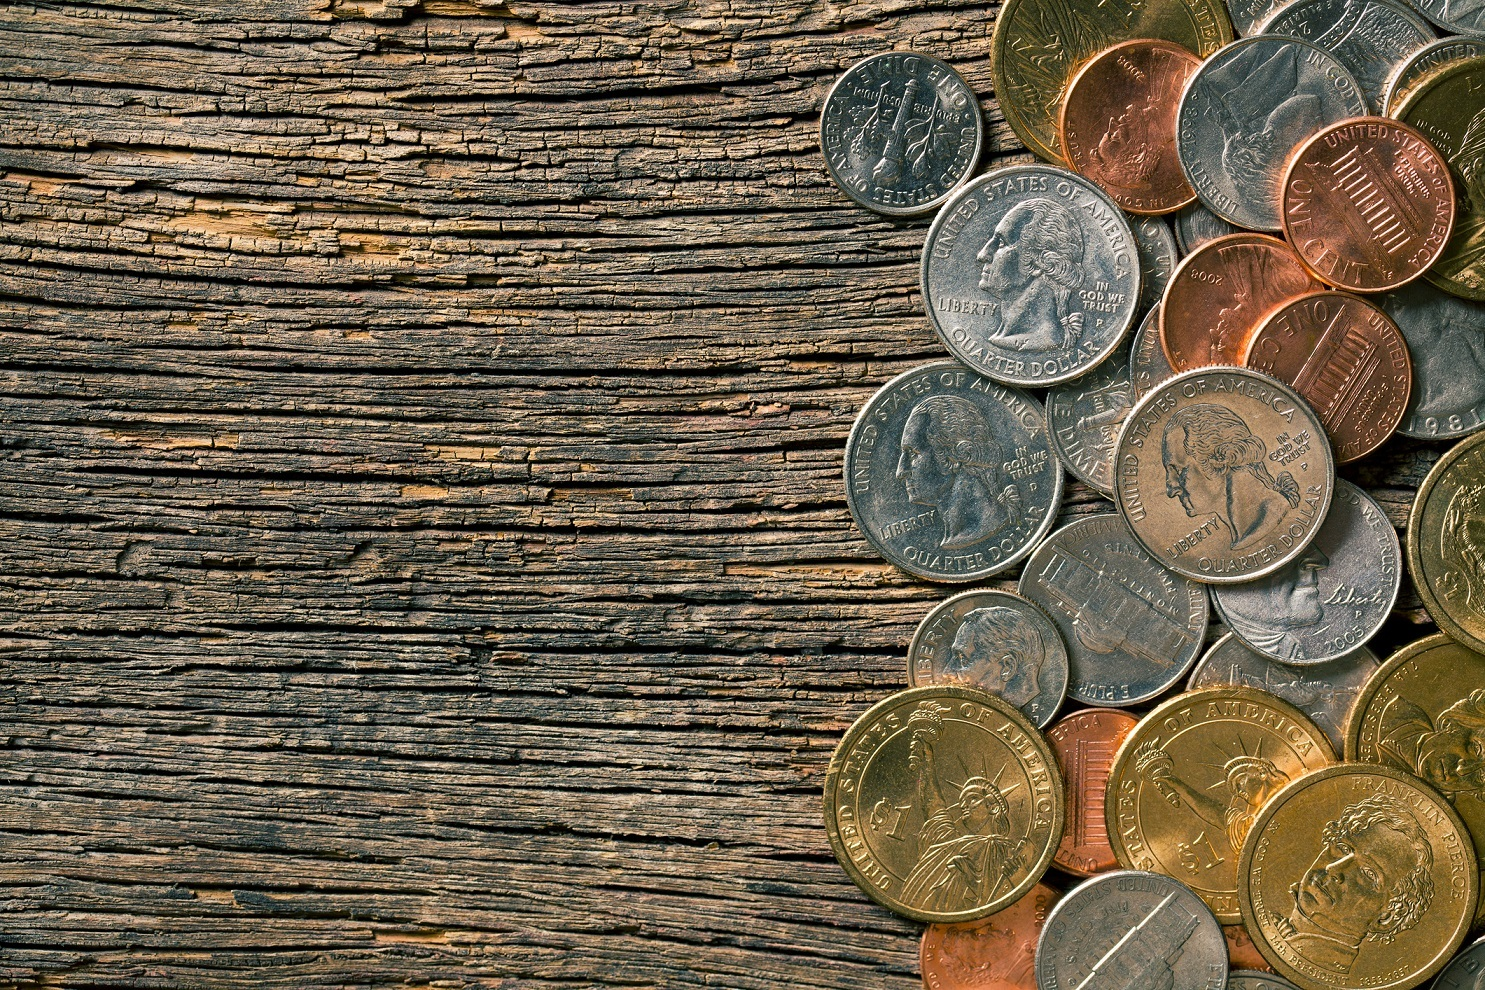 U.S. coins on old wooden background